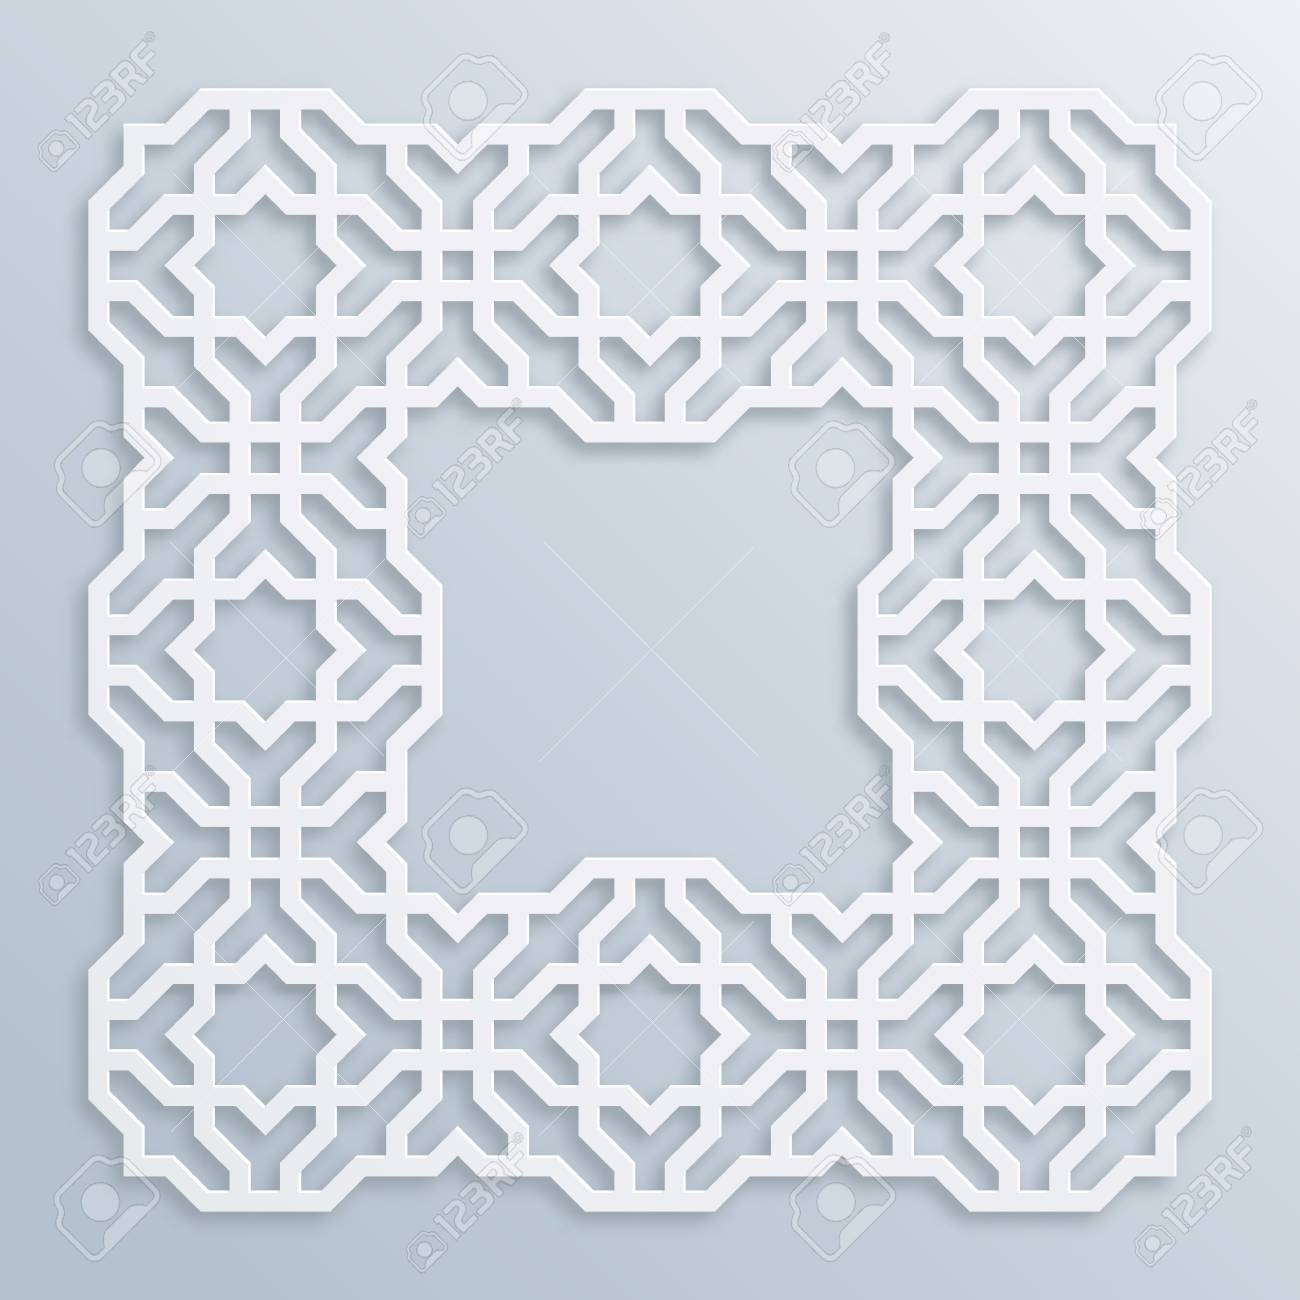 Motif Relief 3d Square White Frame Vignette Islamic Geometric Border Bas Relief